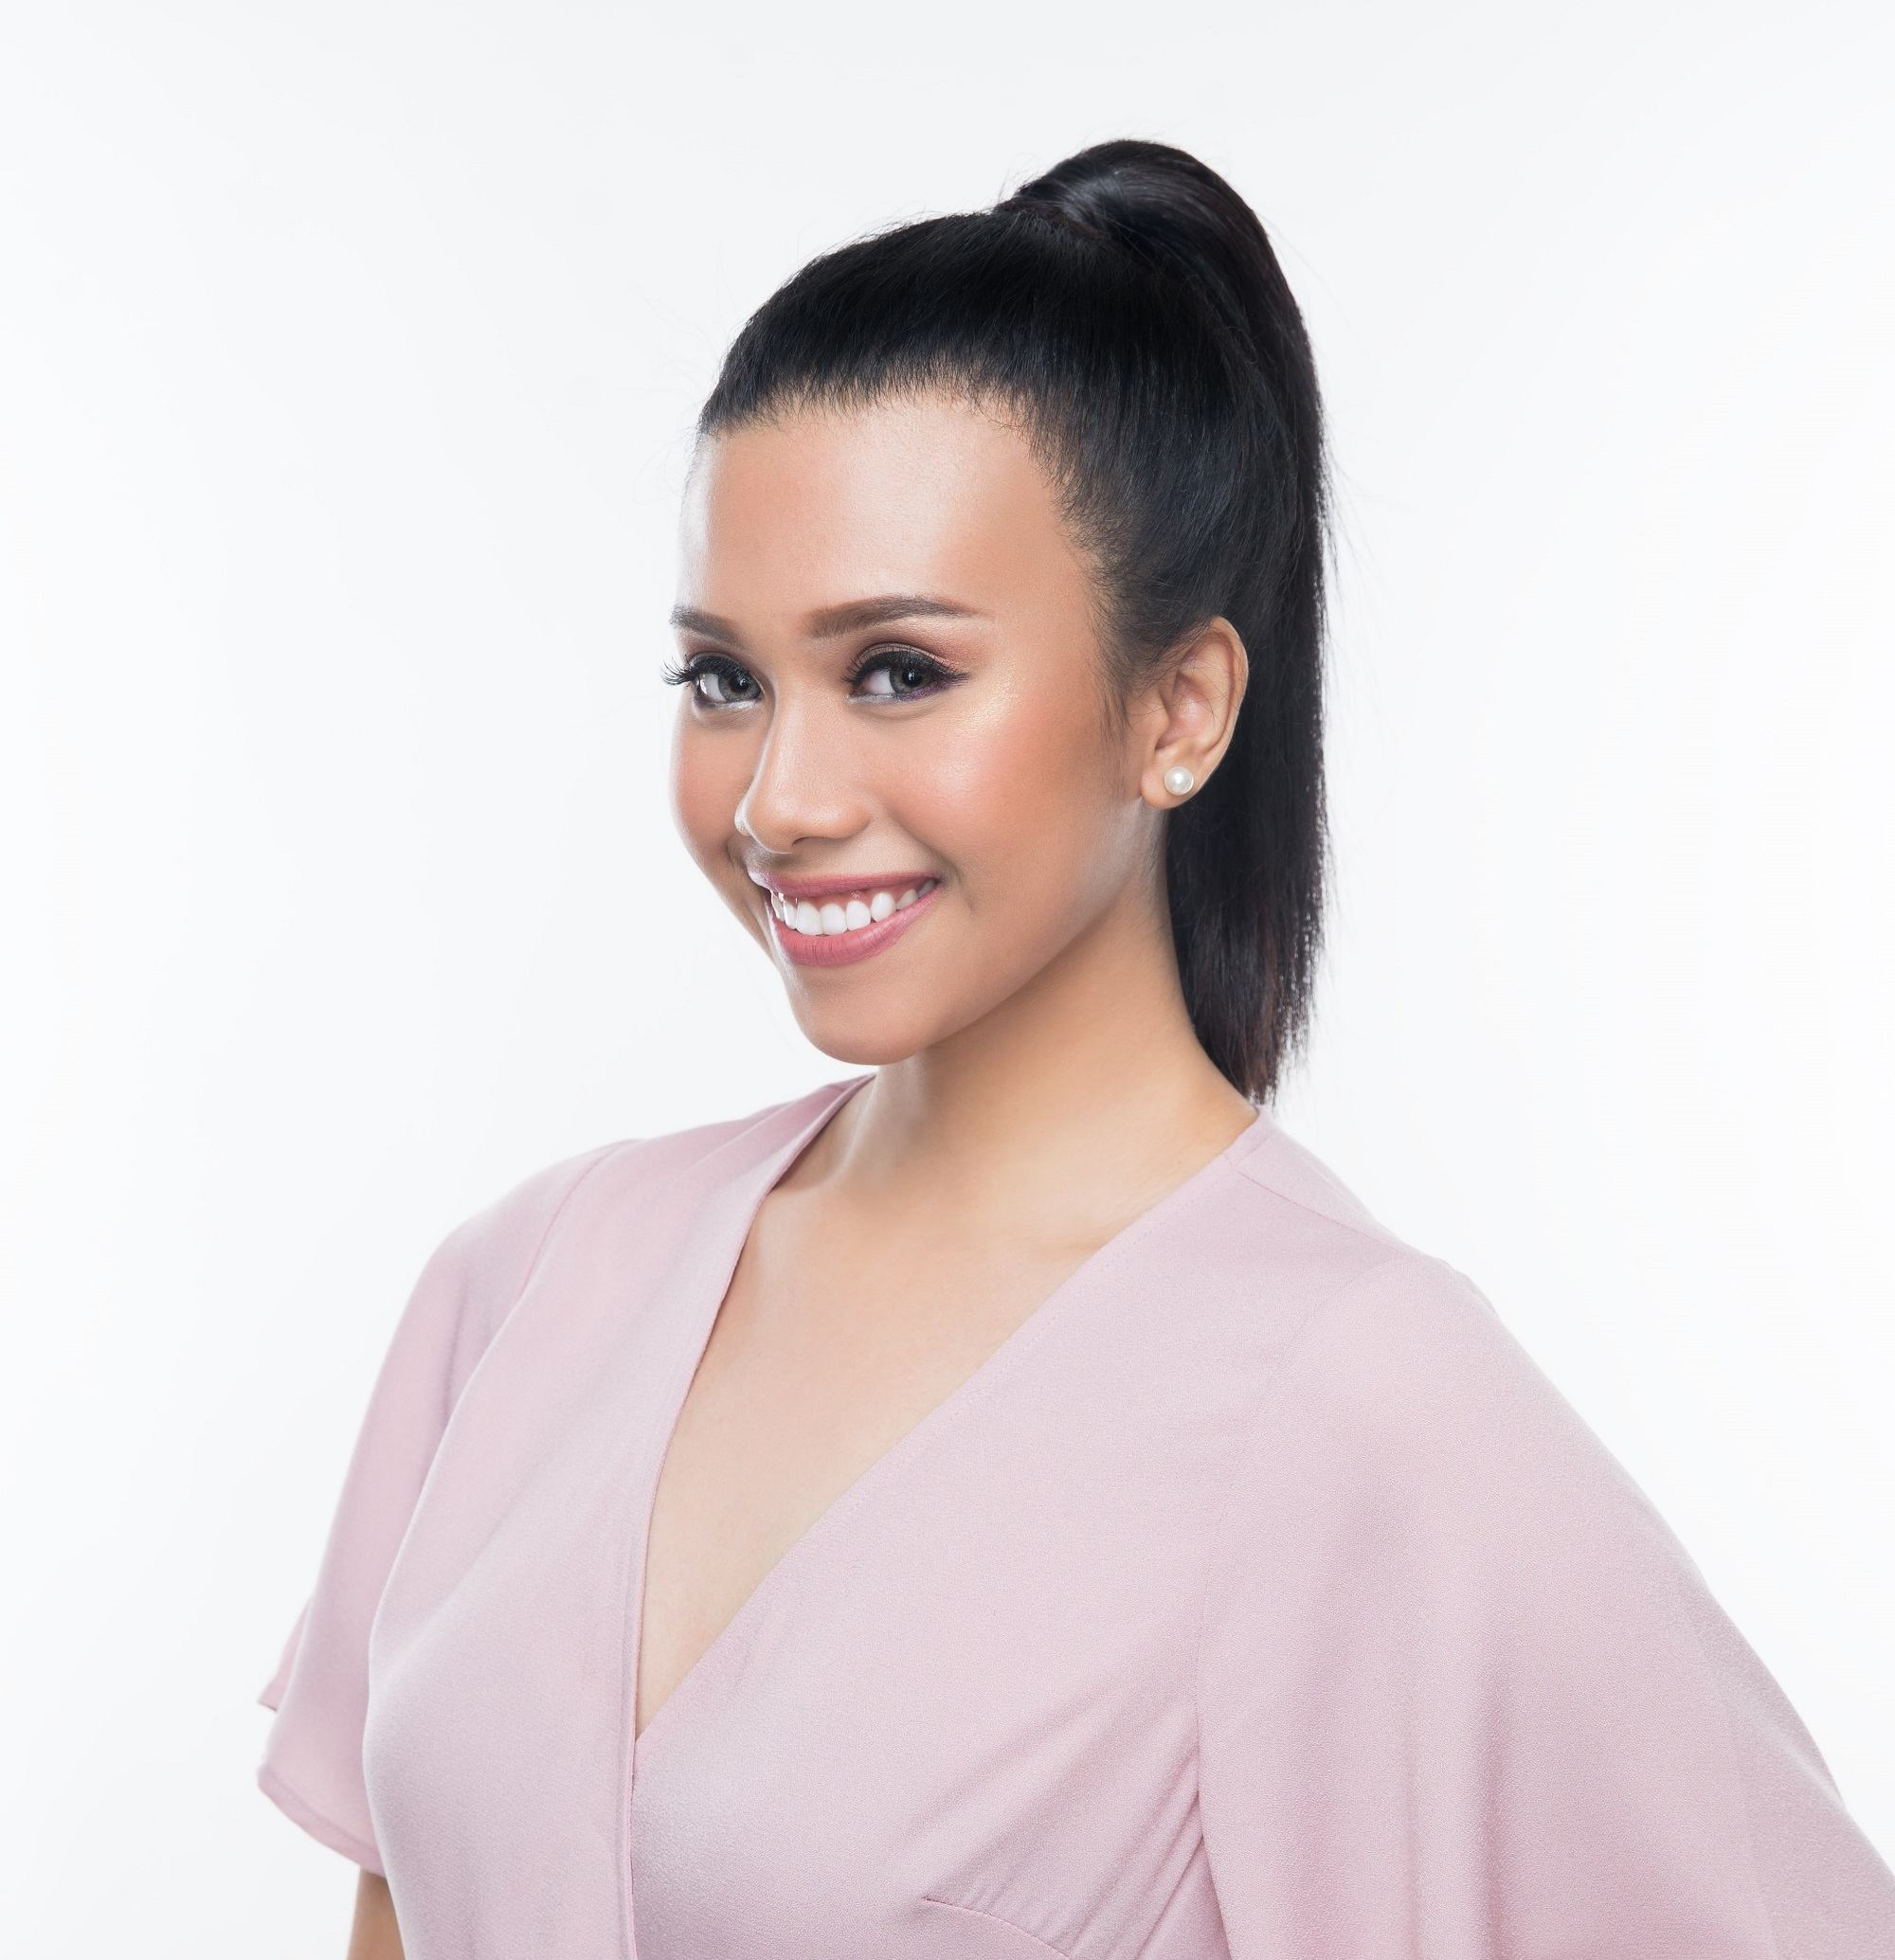 Easy commuter-friendly hairstyles: Asian woman with long black hair in a high ponytail wearing a pink blouse